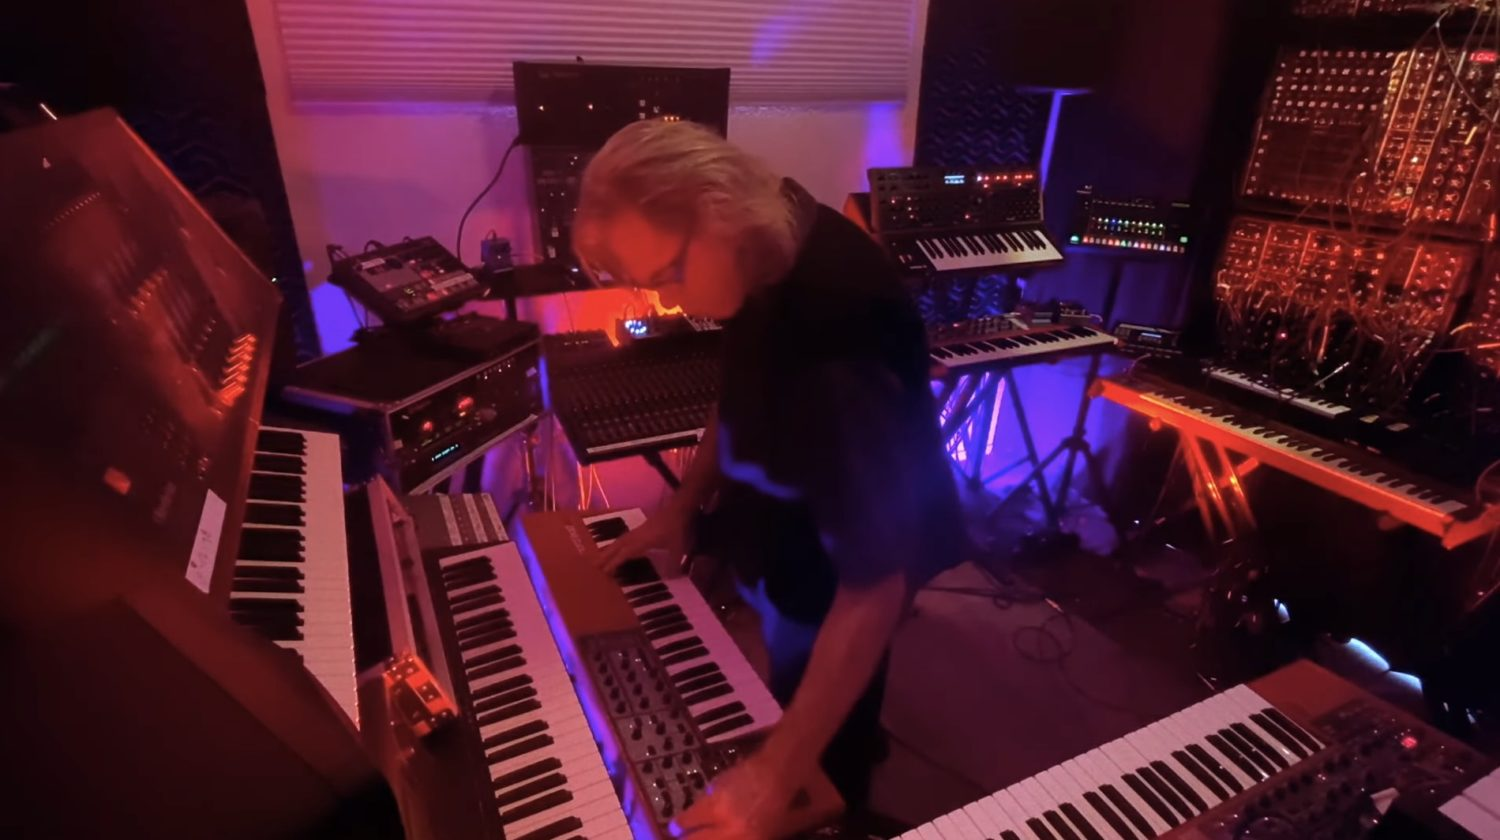 Phoenix Synthesizer Festival Features Hours Of Streaming Performances, Rig Tours & More